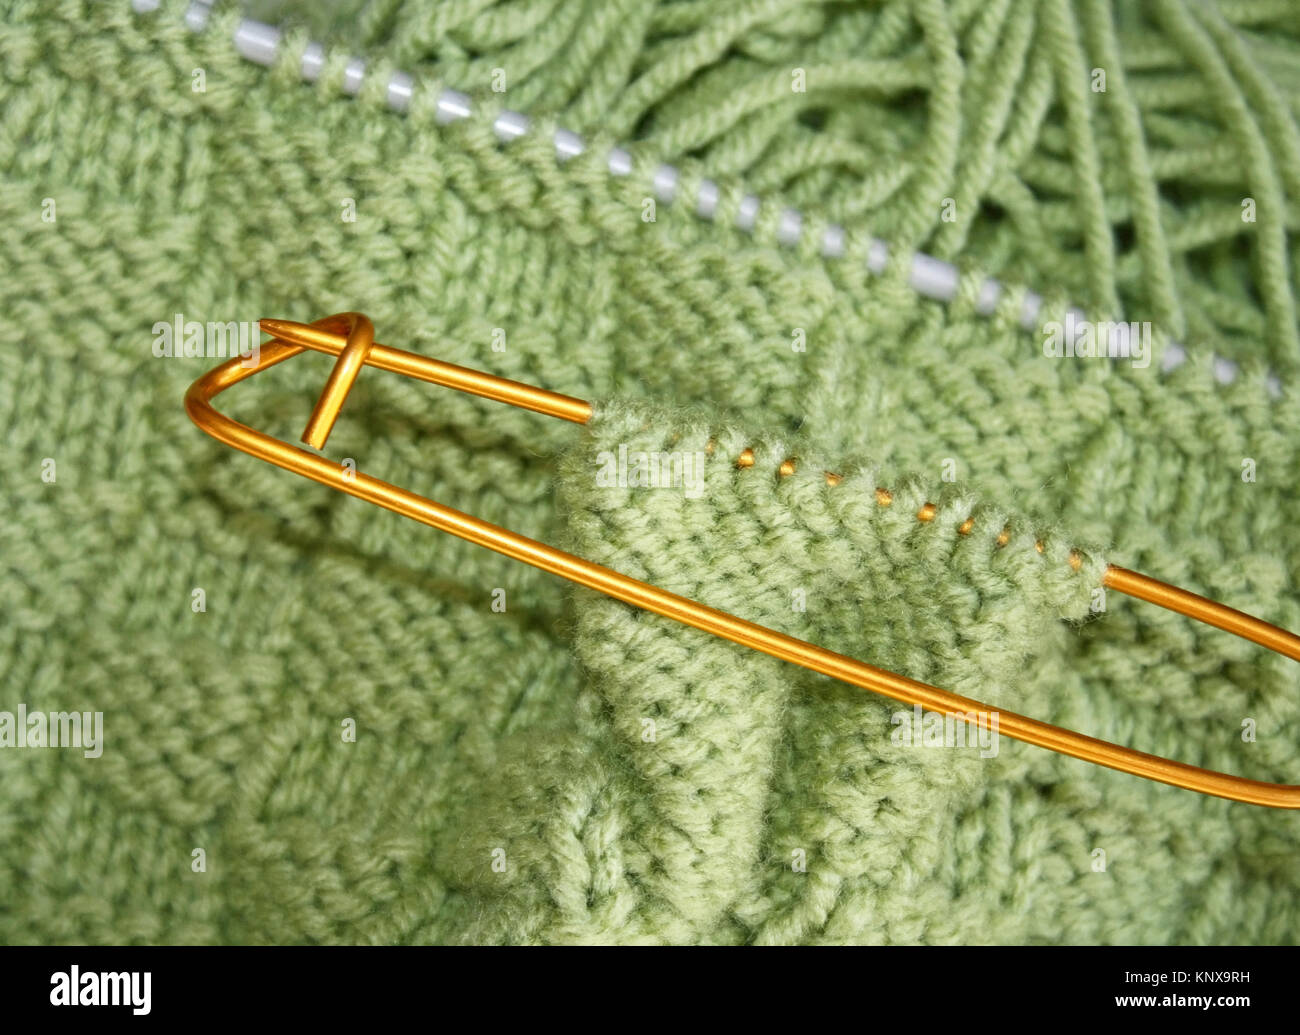 Basket weave pattern knitted on knitting needles in sage green color wool.   Stitch holder in place marking off - Stock Image